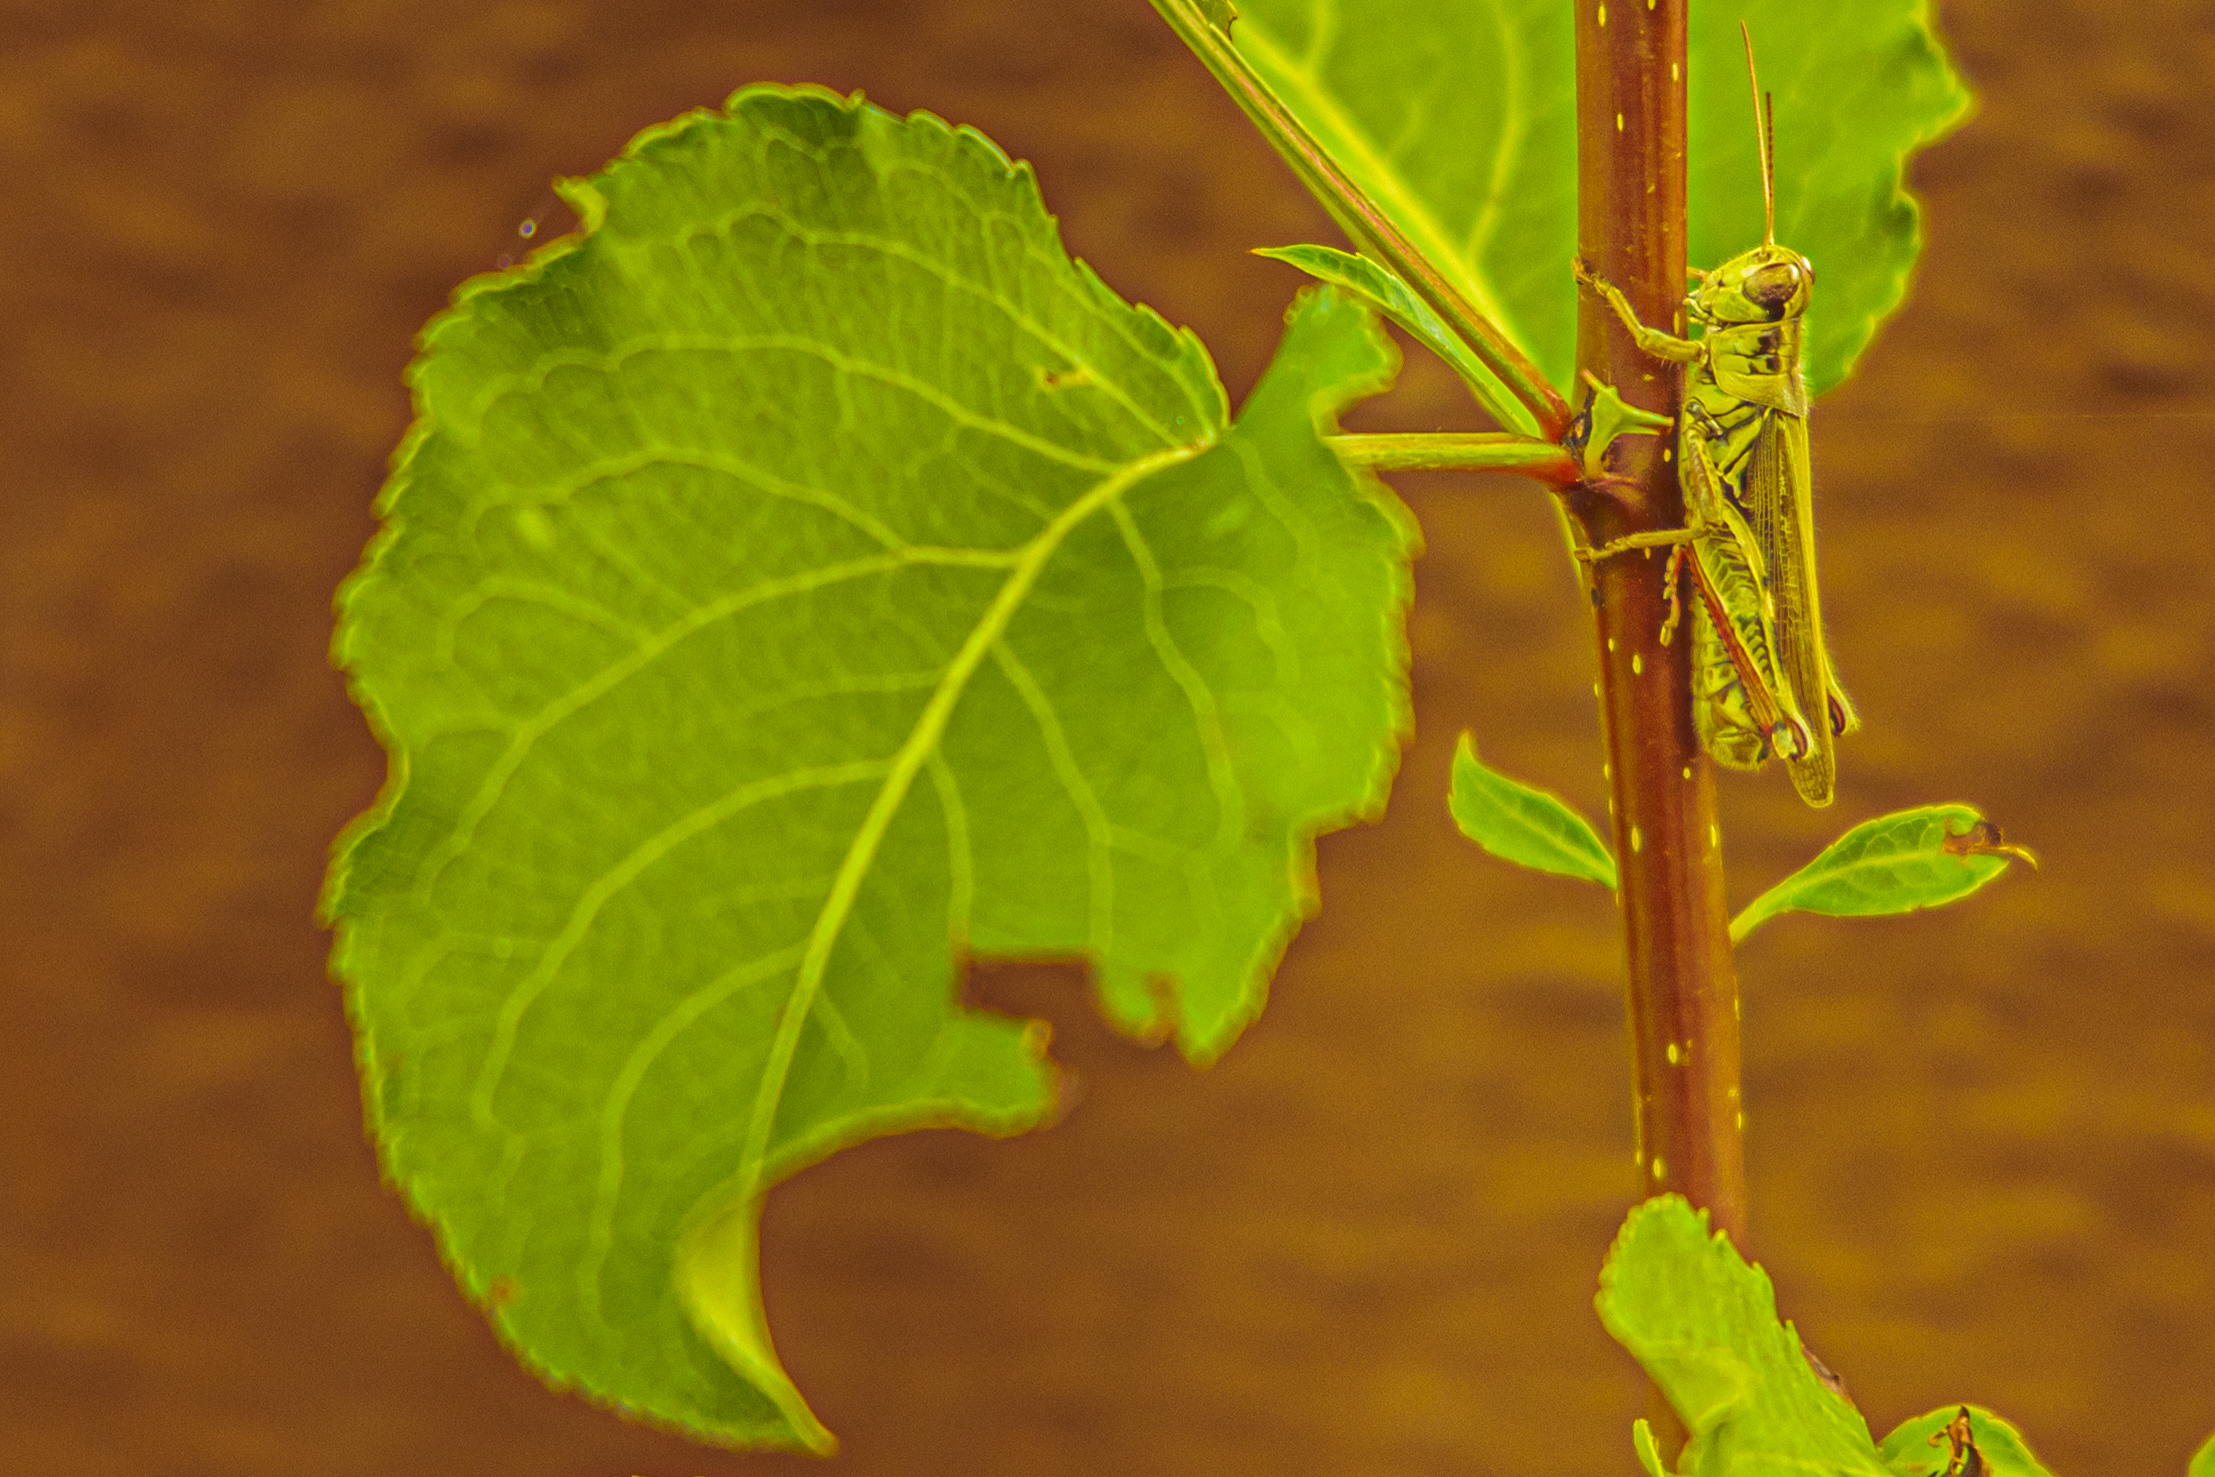 Photograph of a grasshoper sitting vertically on a branch with leaves on the left side of the photo.